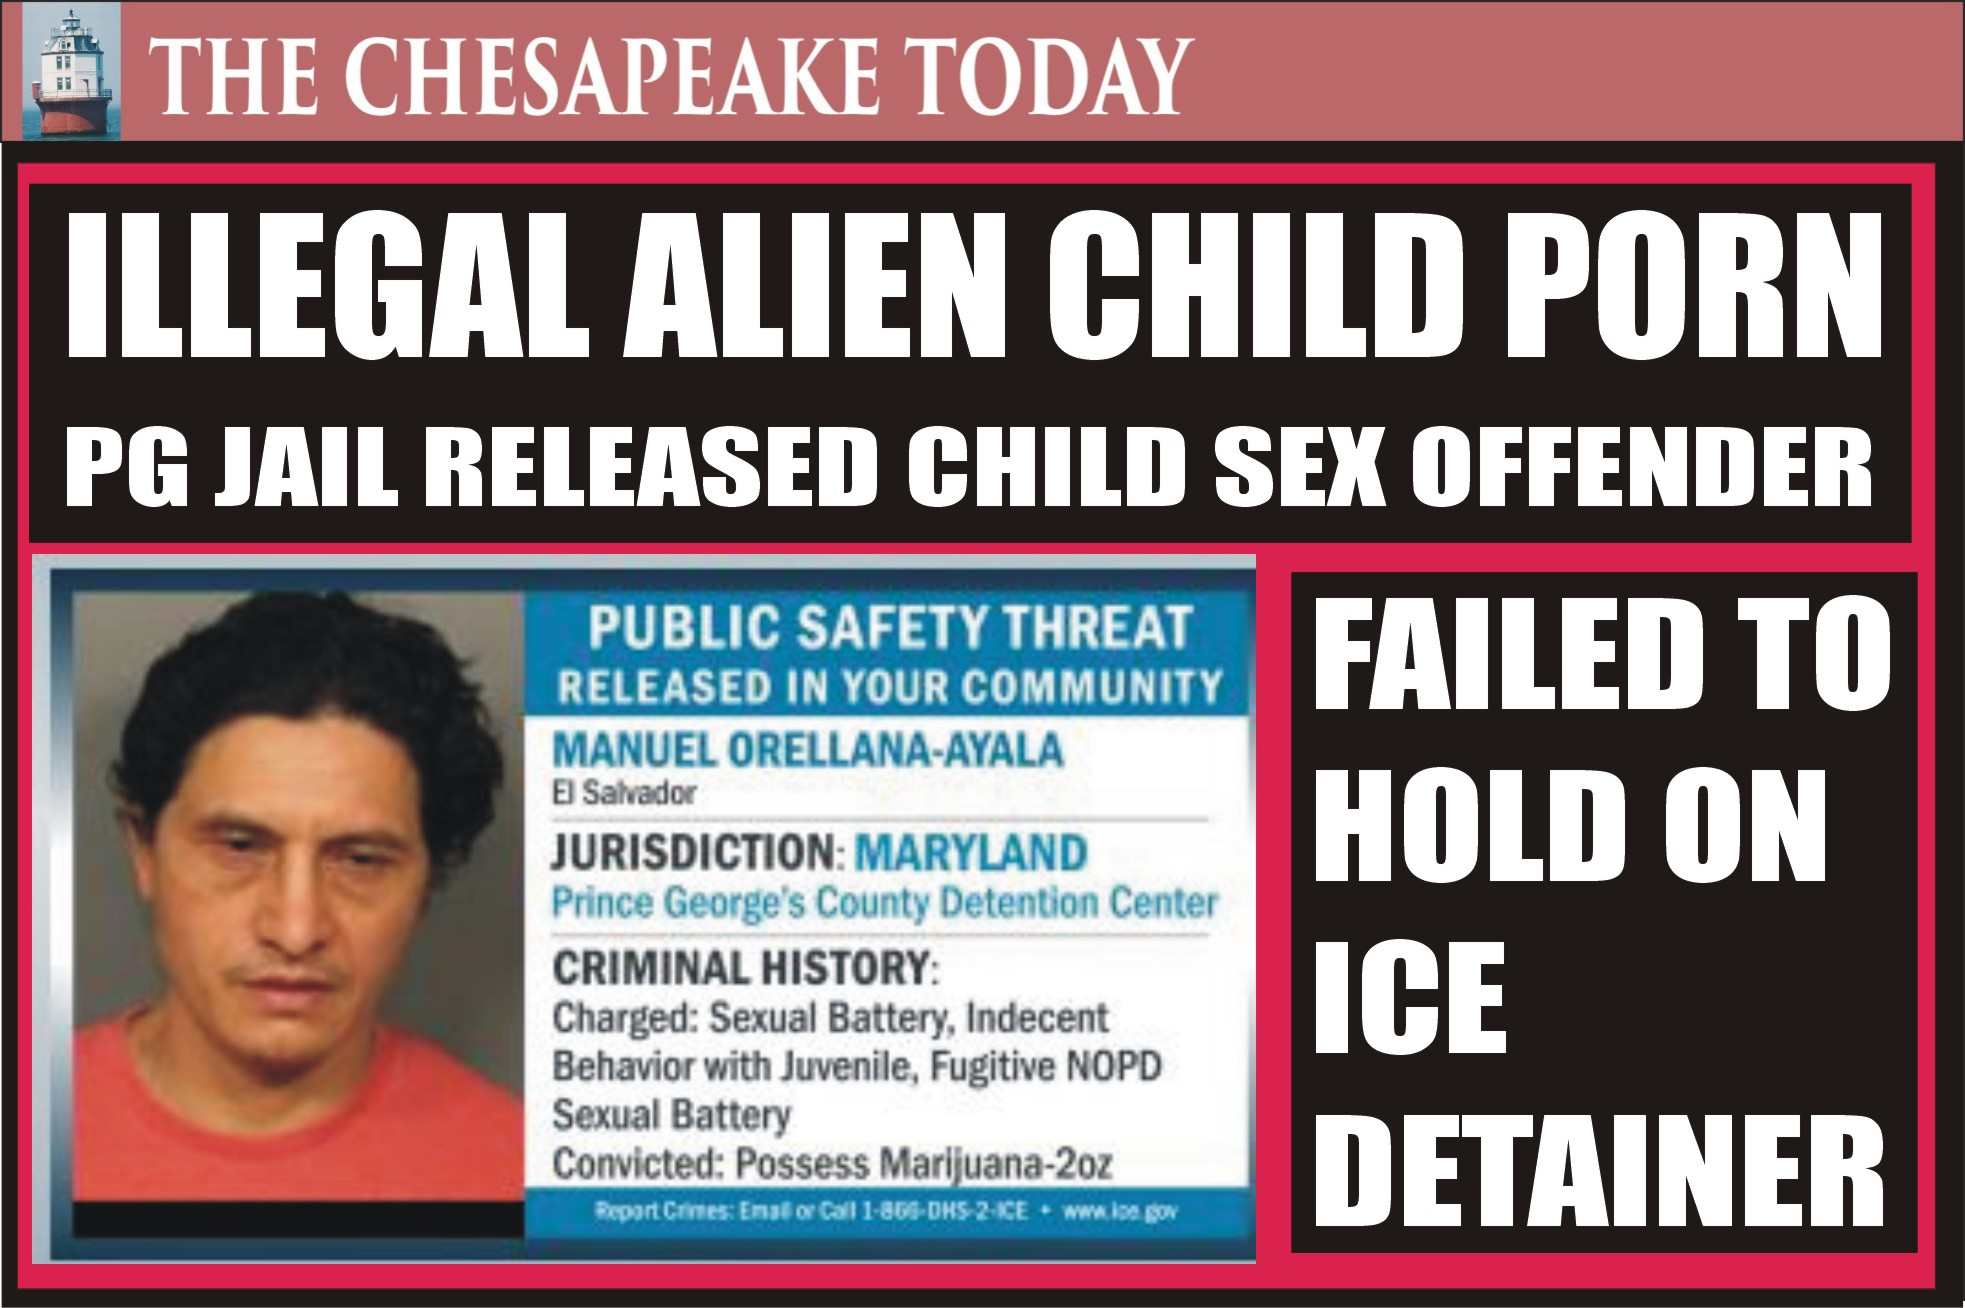 CHILD SEX OFFENDER RELEASED: Prince Georges County set illegal alien Manuel Orellana-Ayala, charged with sexual battery of a child, freed without notifying ICE